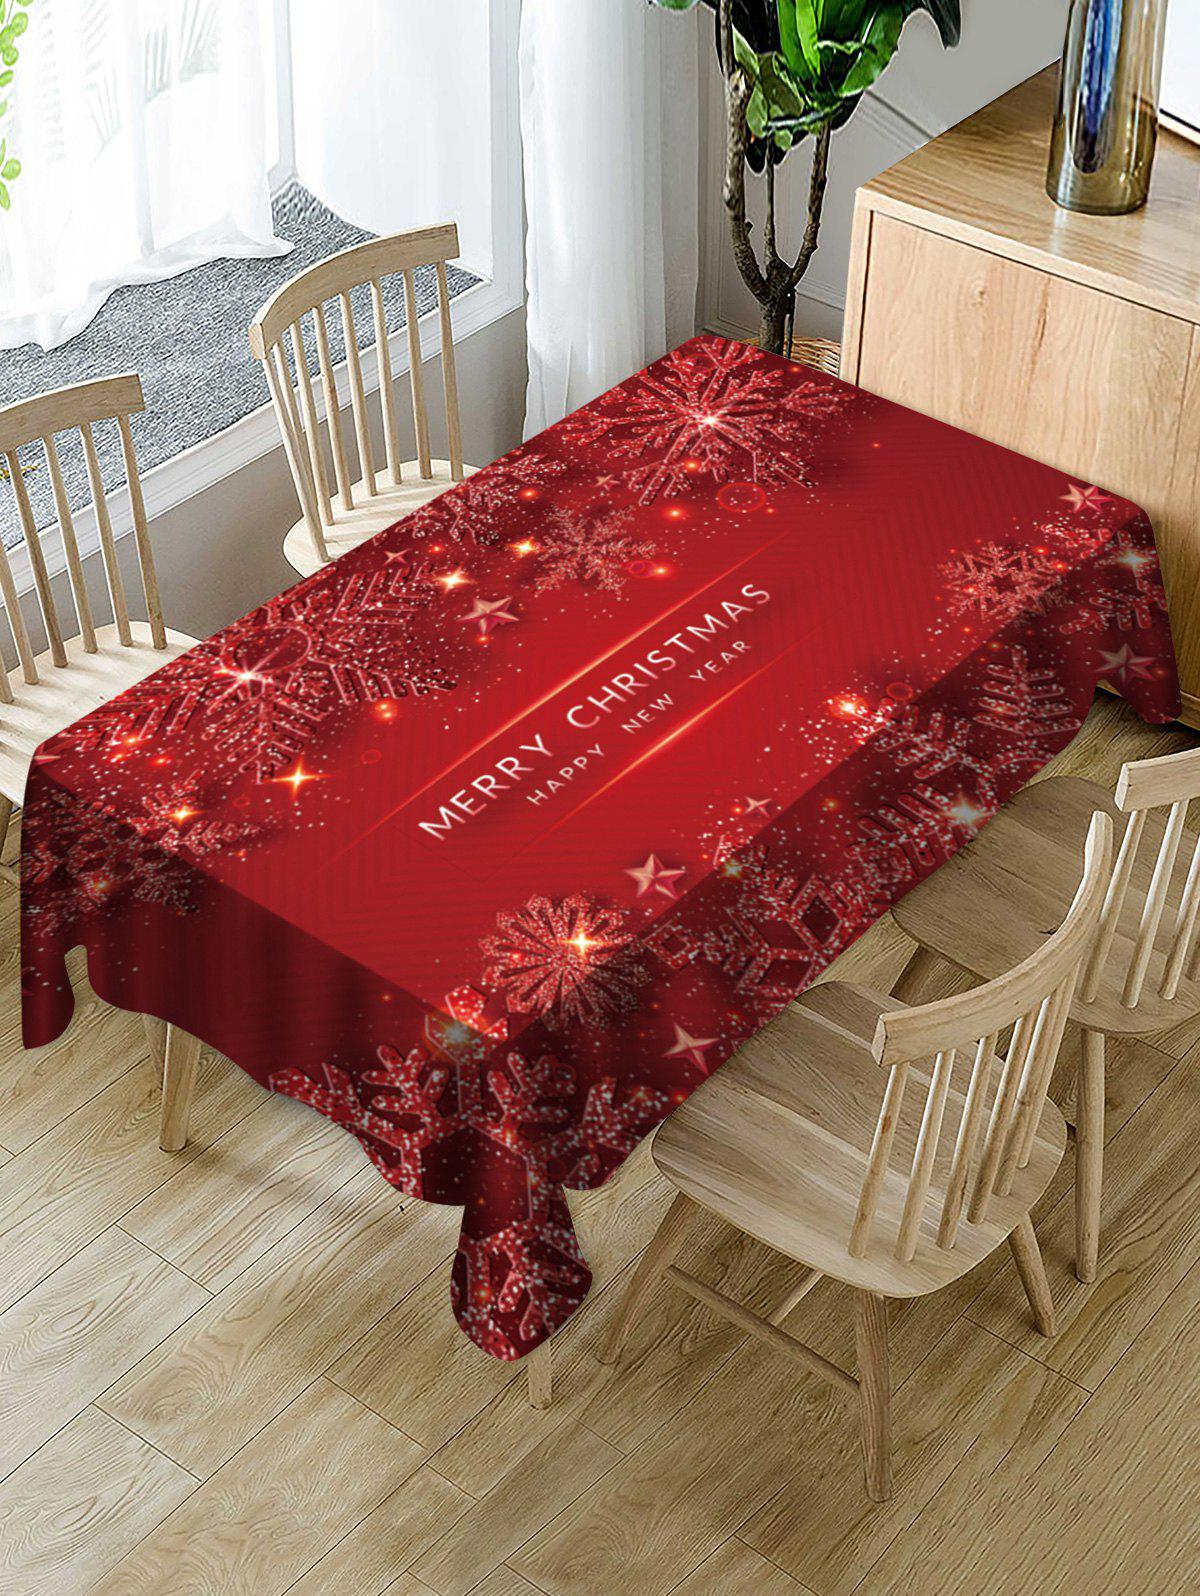 Merry Christmas Snowflake Fabric Table Cloth - RED WINE 60 X 84 INCH